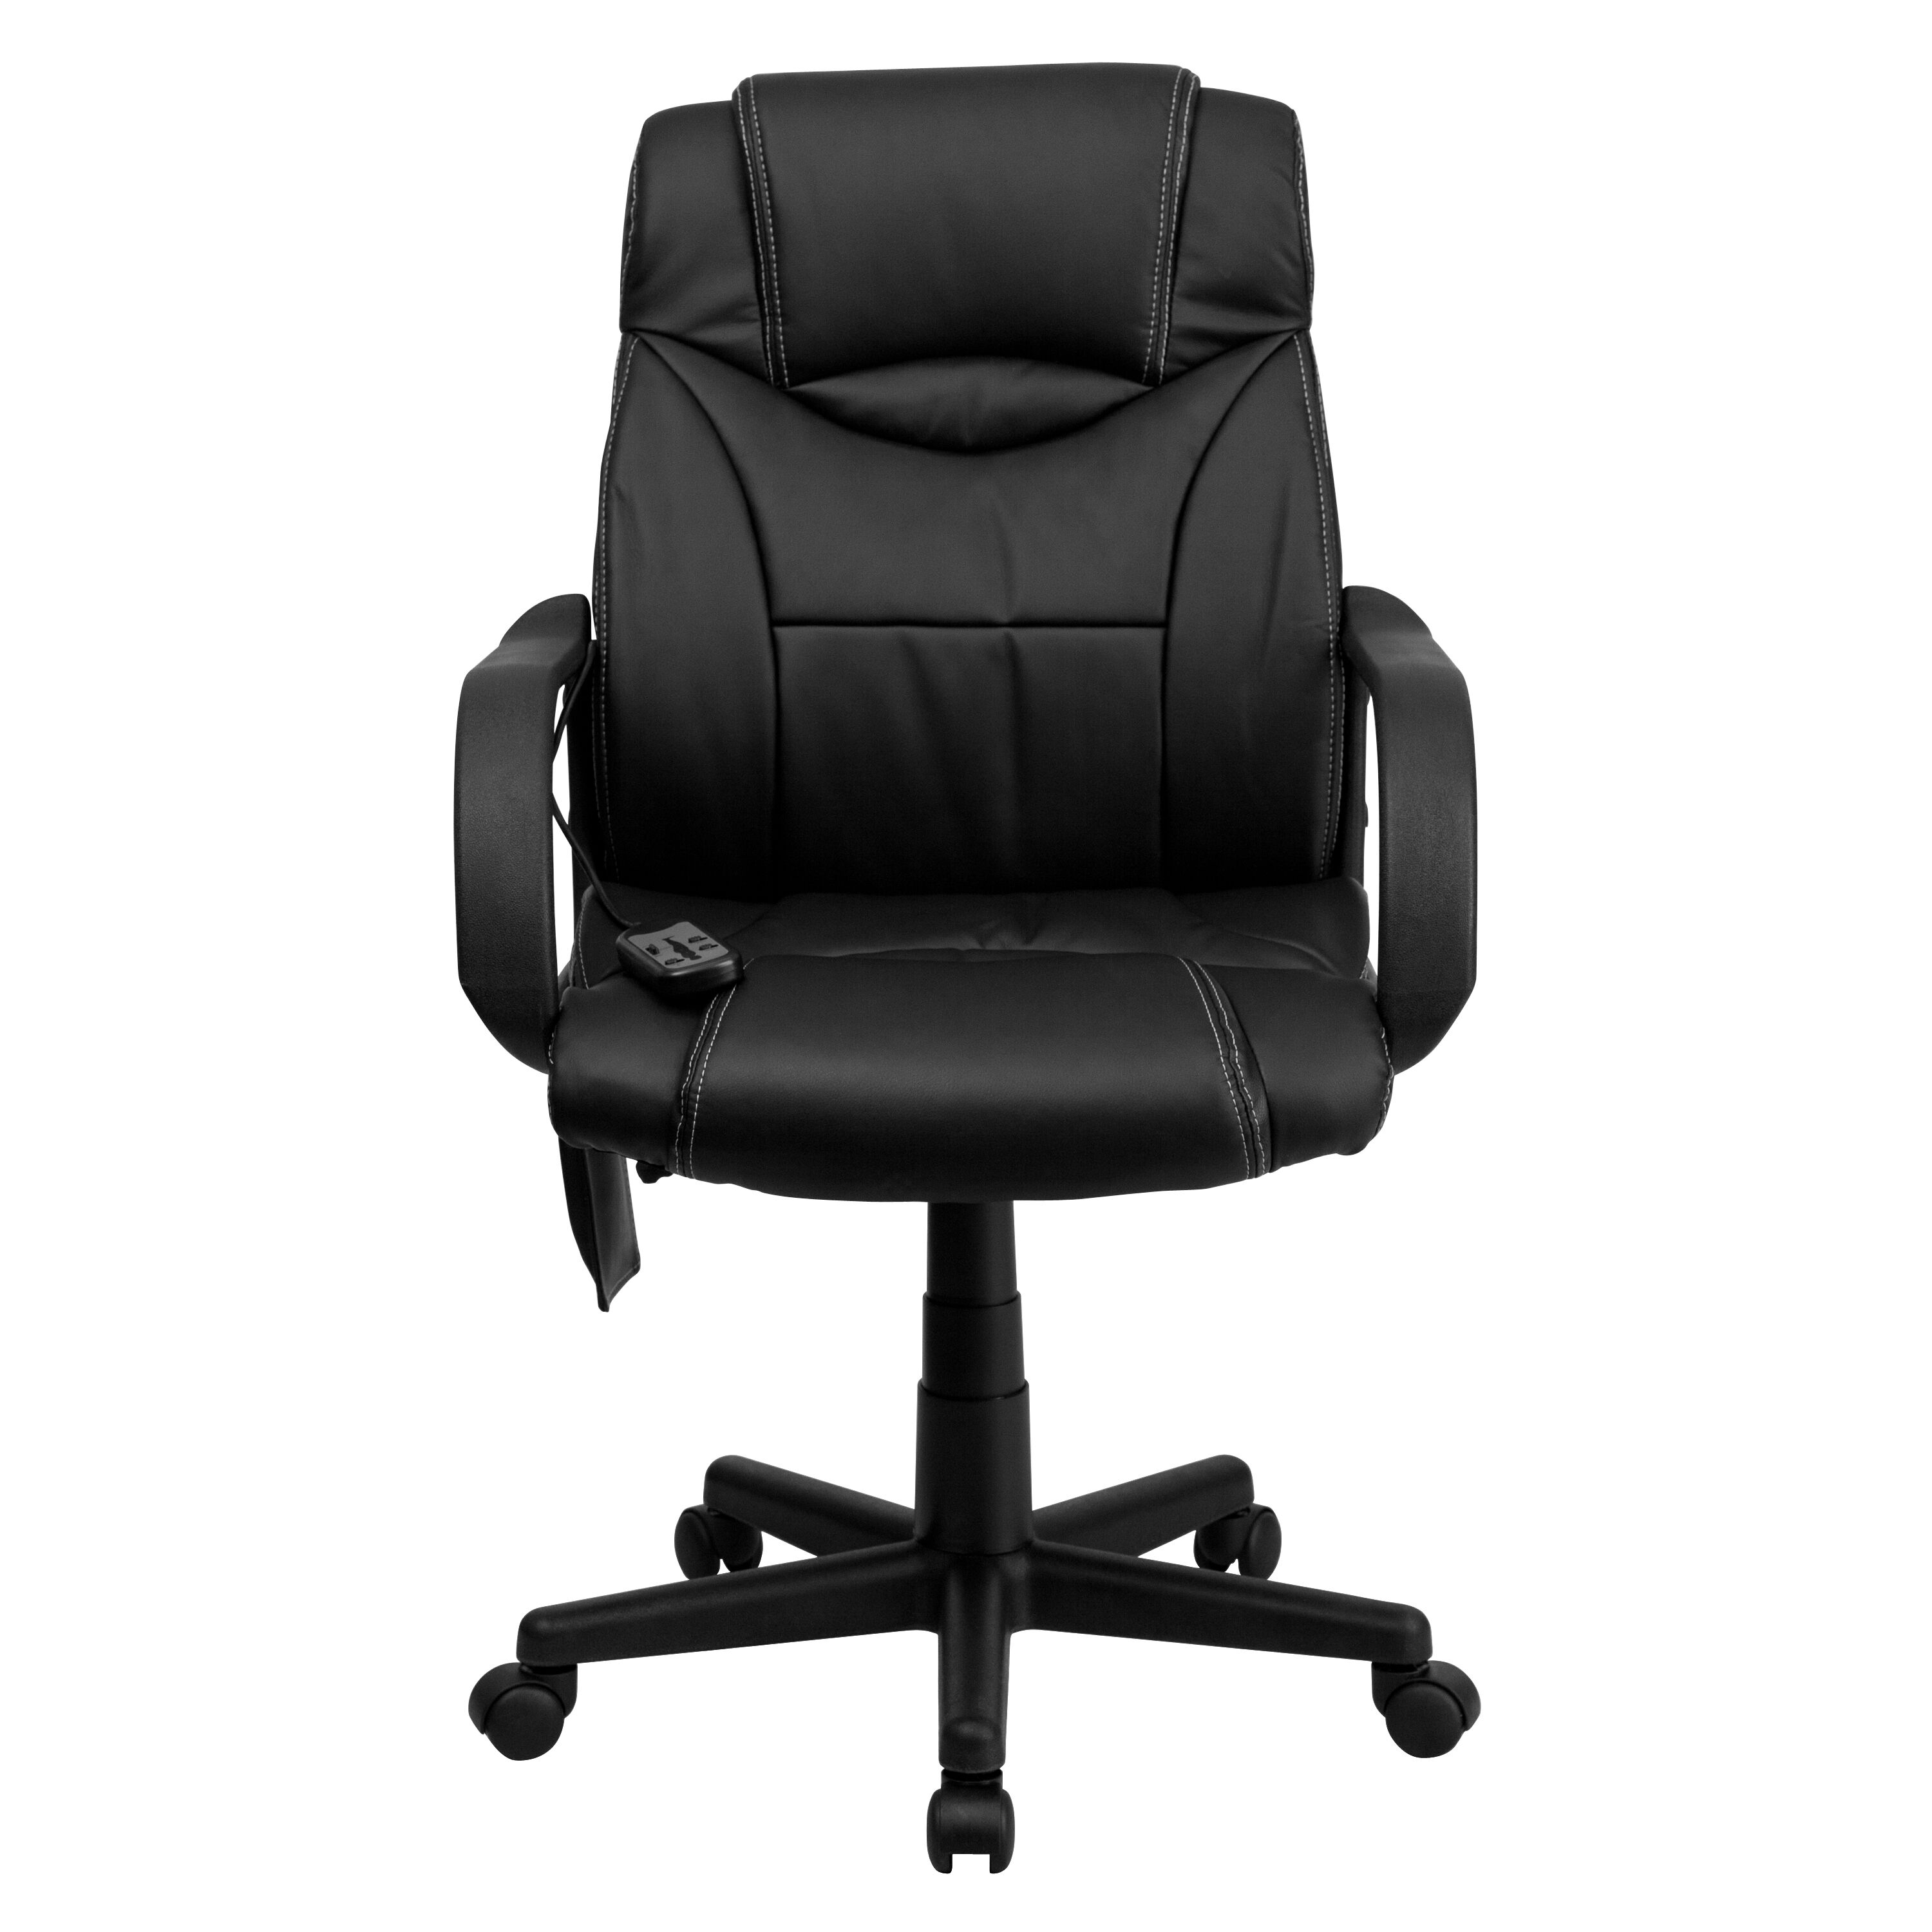 Massage Office Chair Mid Back Ergonomic Massaging Black Leather Executive Swivel Office Chair With Arms